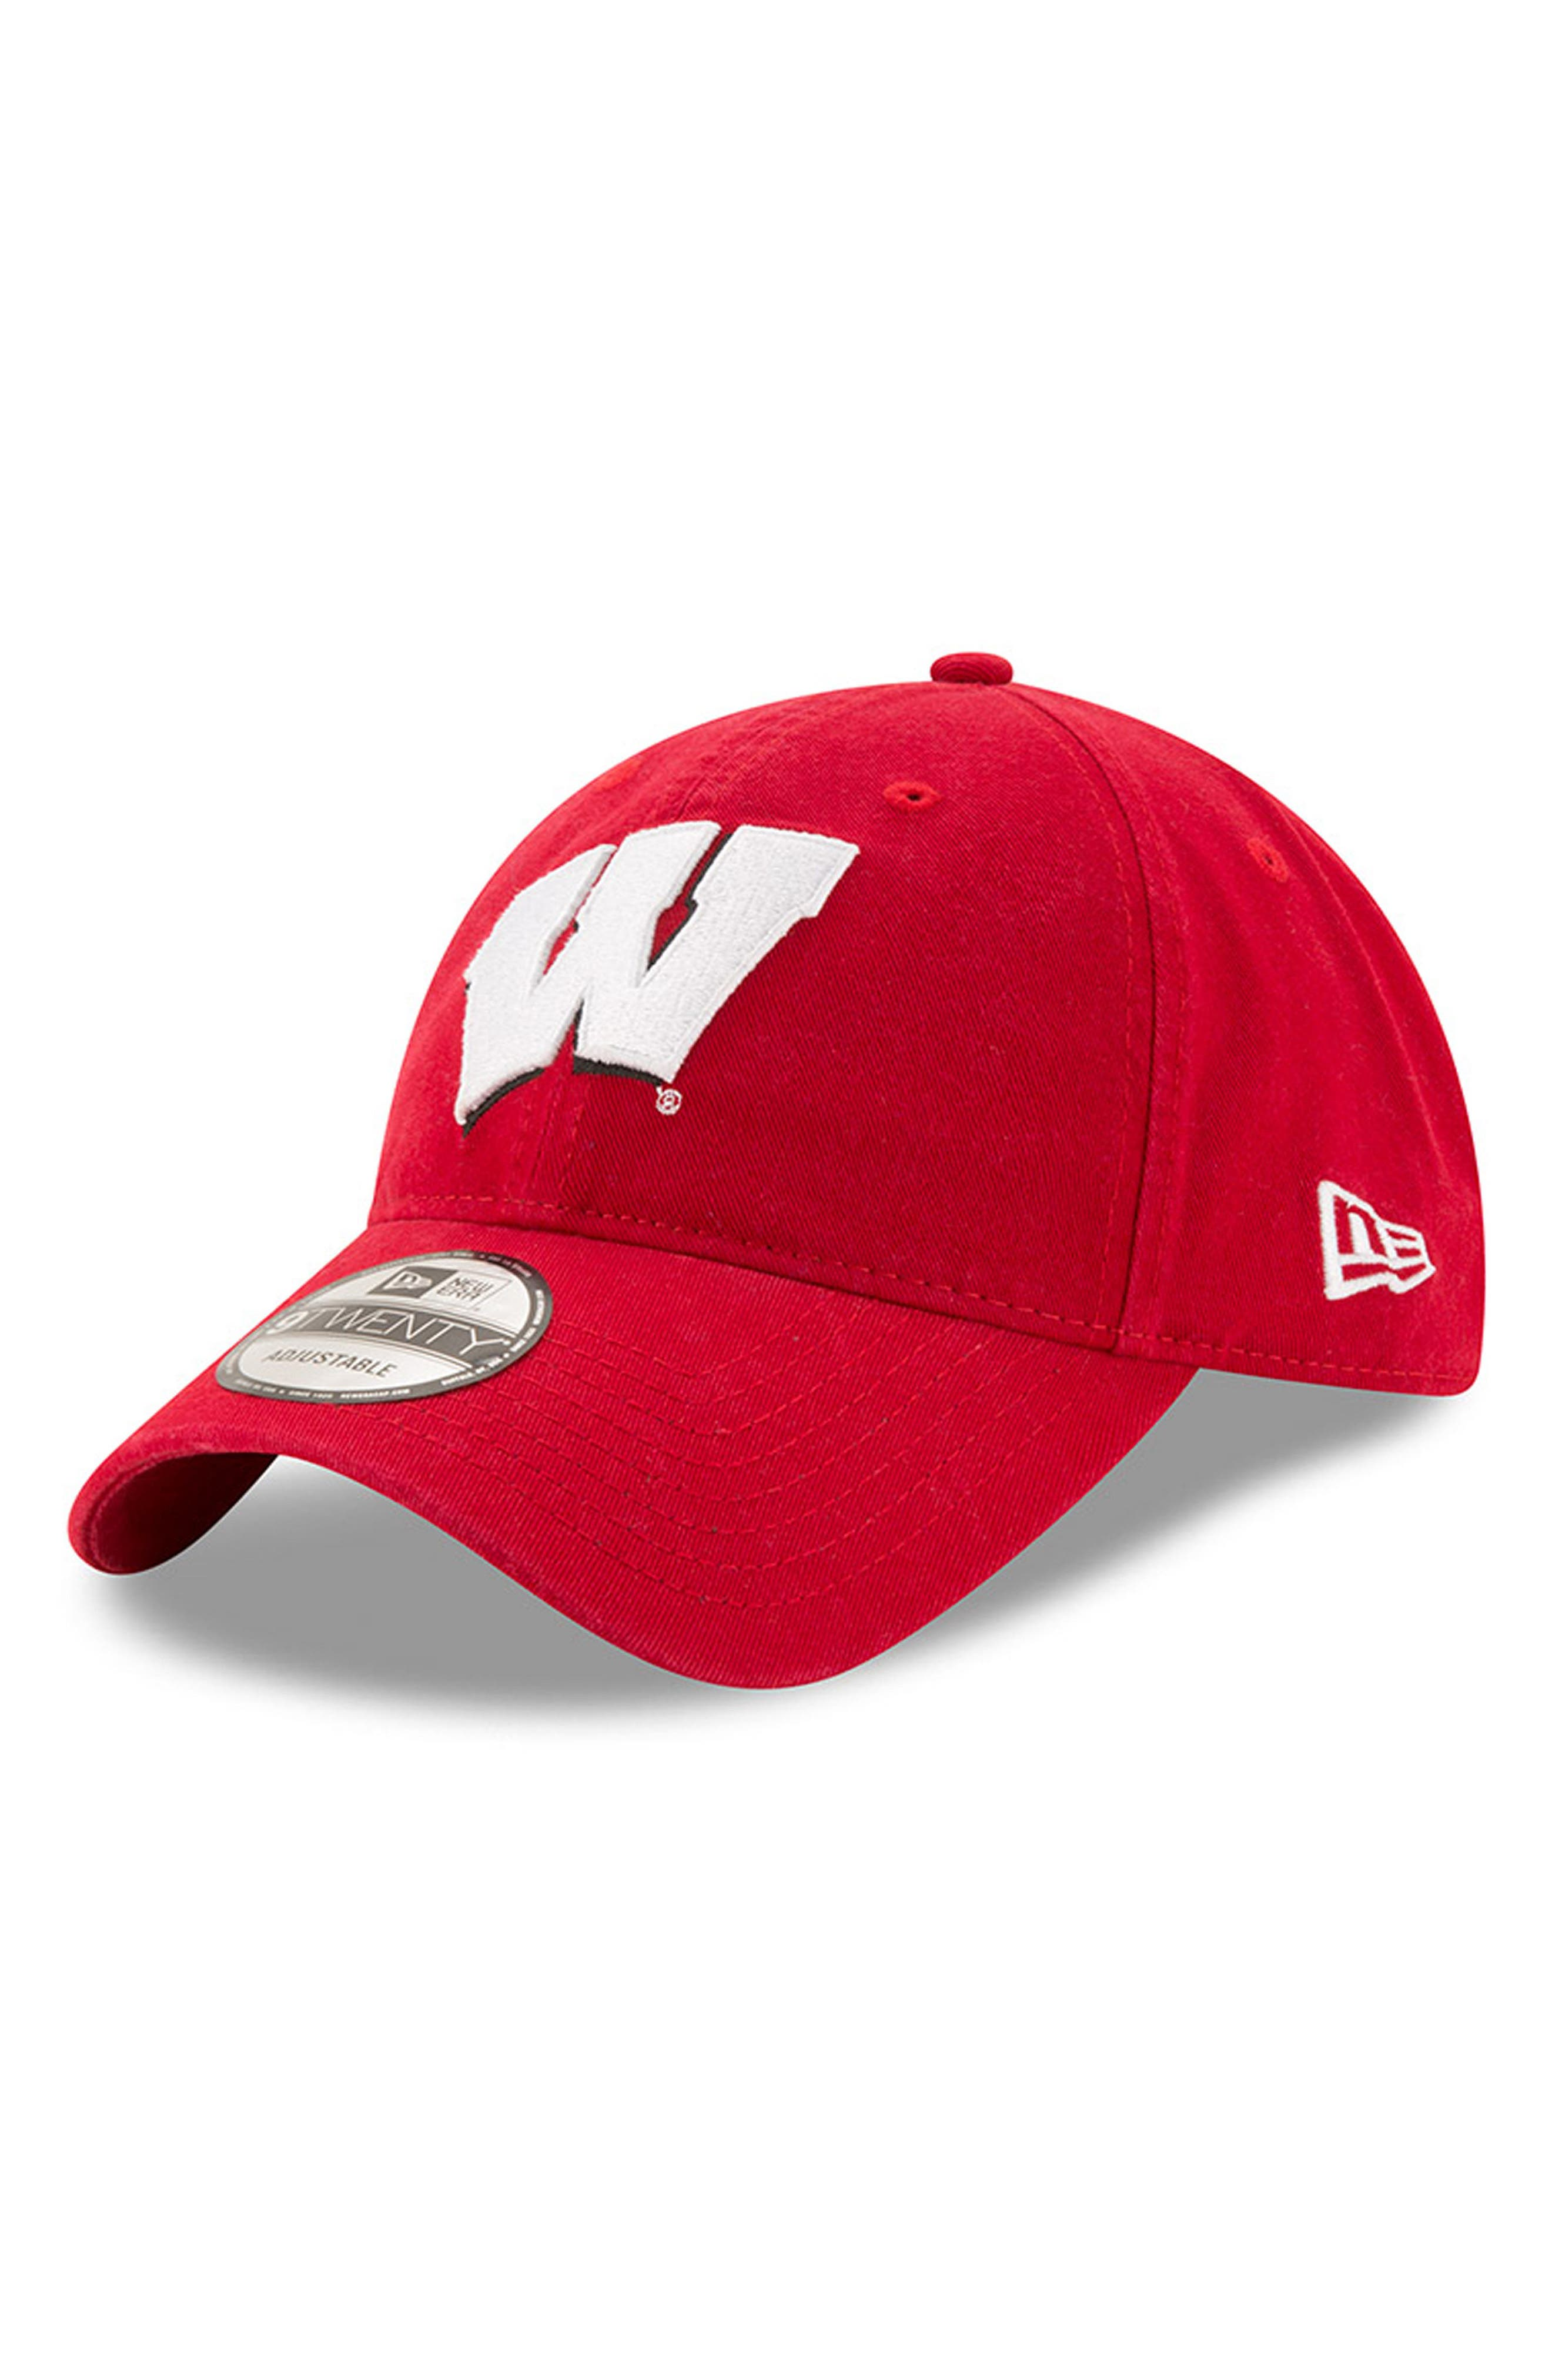 New Era Collegiate Core Classic - Wisconsin Badgers Baseball Cap,                             Main thumbnail 1, color,                             600